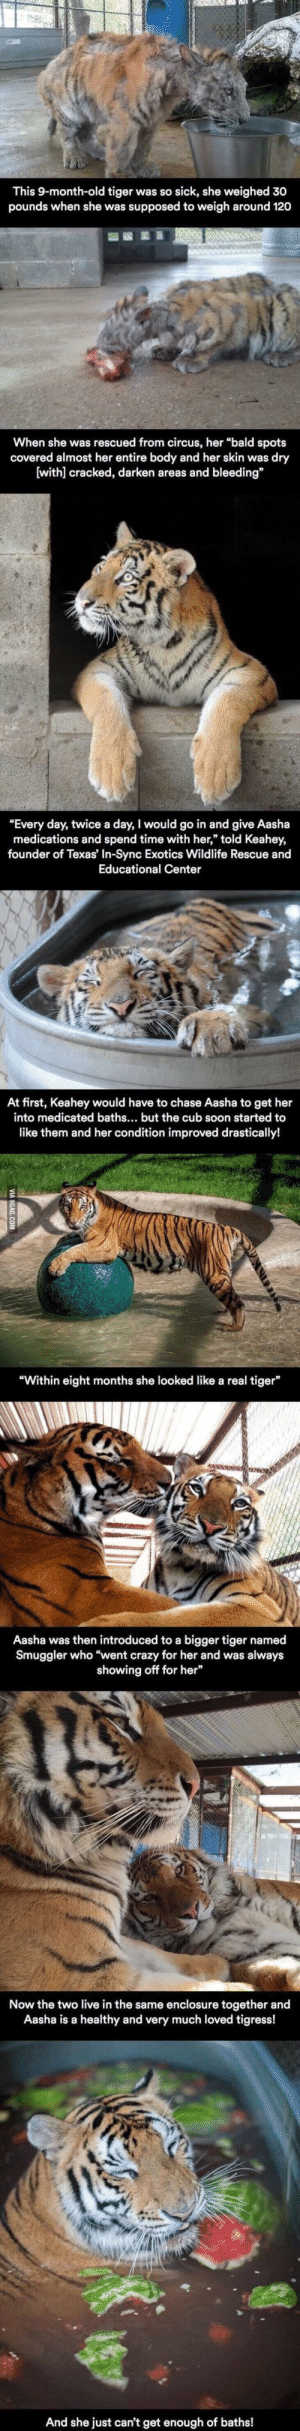 """Crazy, Cute, and Soon...: This 9-month-old tiger was so sick, she weighed 30  pounds when she was supposed to weigh around 120  When she was rescued from circus, her """"bald spots  covered almost her entire body and her skin was dry  (withl cracked, darken areas and bleeding  """"Every day, twice a day, I would go in and give Aasha  medications and spend time with her,"""" told Keahey  founder of Texas' In-Sync Exotics Wildlife Rescue and  Educational Center  At first, Keahey would have to chase Aasha to get her  into medicated baths... but the cub soon started to  like them and her condition improved drastically!  Within eight months she looked like a real tiger  Aasha was then introduced to a bigger tiger named  Smuggler who """"went crazy for her and was always  showing off for her  Now the two live in the same enclosure together and  Aasha is a healthy and very much loved tigress!  And she just can't get enough of baths! This cute tiger! 🐅"""